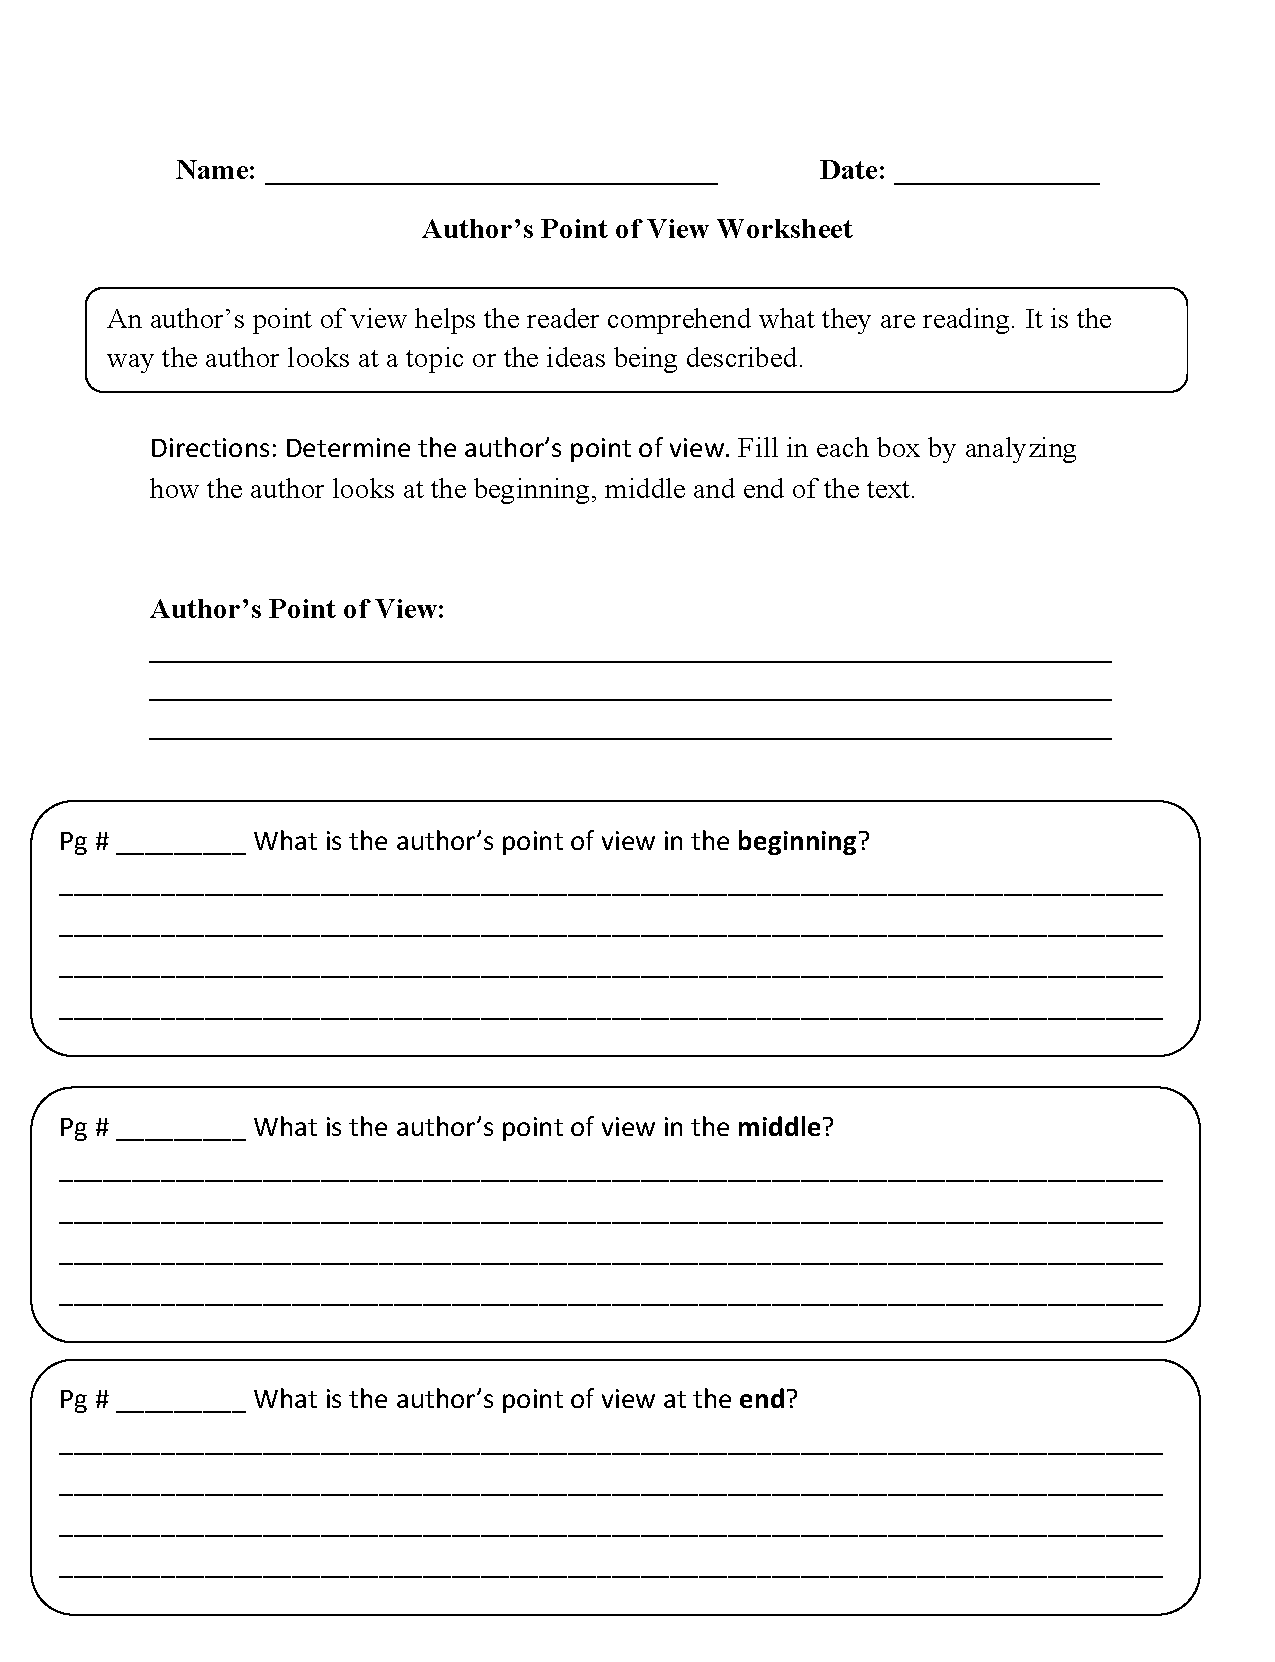 Weirdmailus  Scenic Englishlinxcom  Point Of View Worksheets With Inspiring Point Of View Worksheets With Archaic Dot To Dot Preschool Worksheets Also Fine Motor Worksheets For Preschoolers In Addition Mixed And Improper Fractions Worksheets And Decimal Fraction Worksheet As Well As Grade  Fraction Worksheets Additionally Accept And Except Worksheet From Englishlinxcom With Weirdmailus  Inspiring Englishlinxcom  Point Of View Worksheets With Archaic Point Of View Worksheets And Scenic Dot To Dot Preschool Worksheets Also Fine Motor Worksheets For Preschoolers In Addition Mixed And Improper Fractions Worksheets From Englishlinxcom